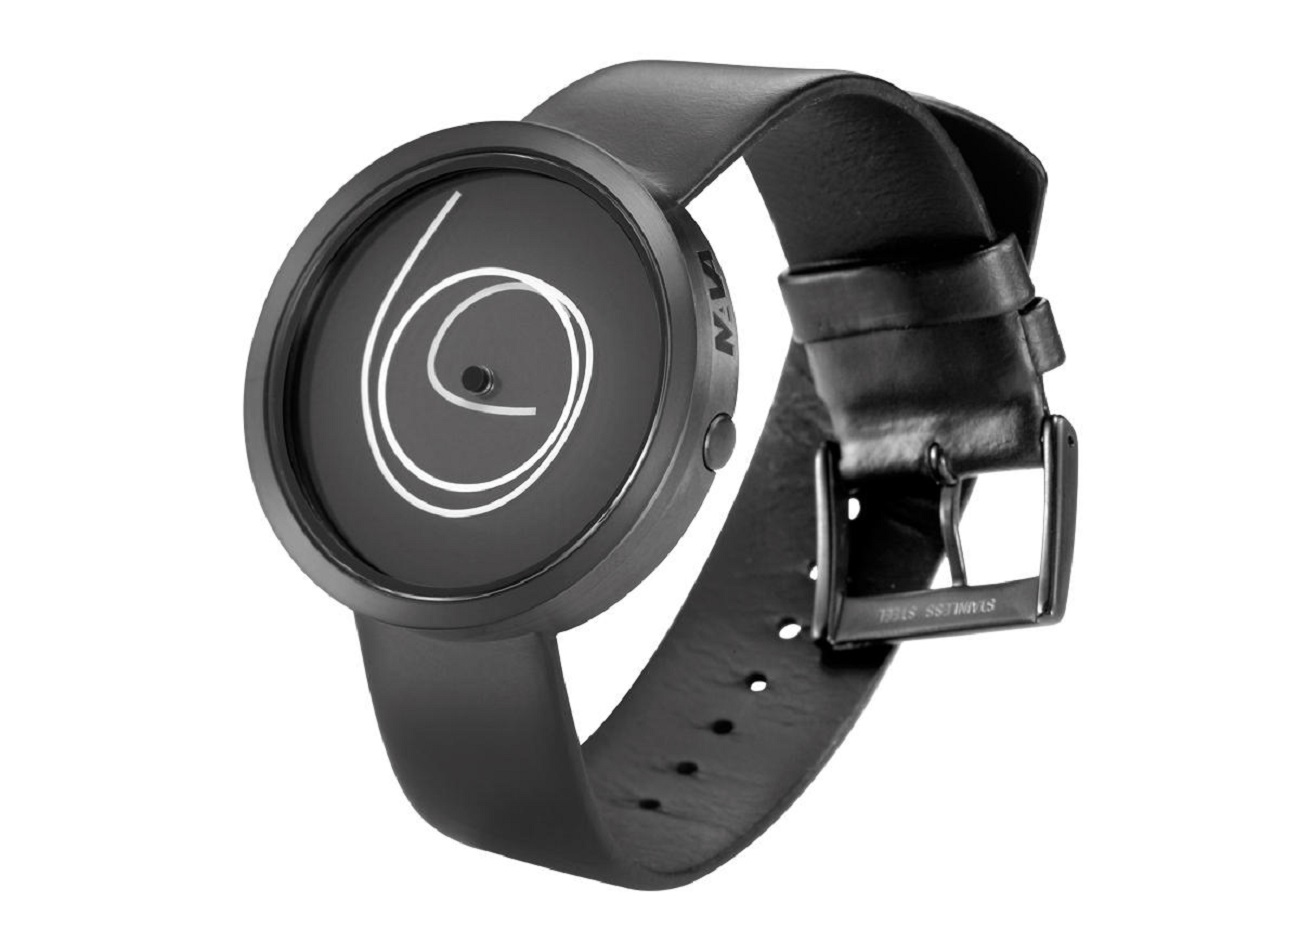 Ora Unica Watch